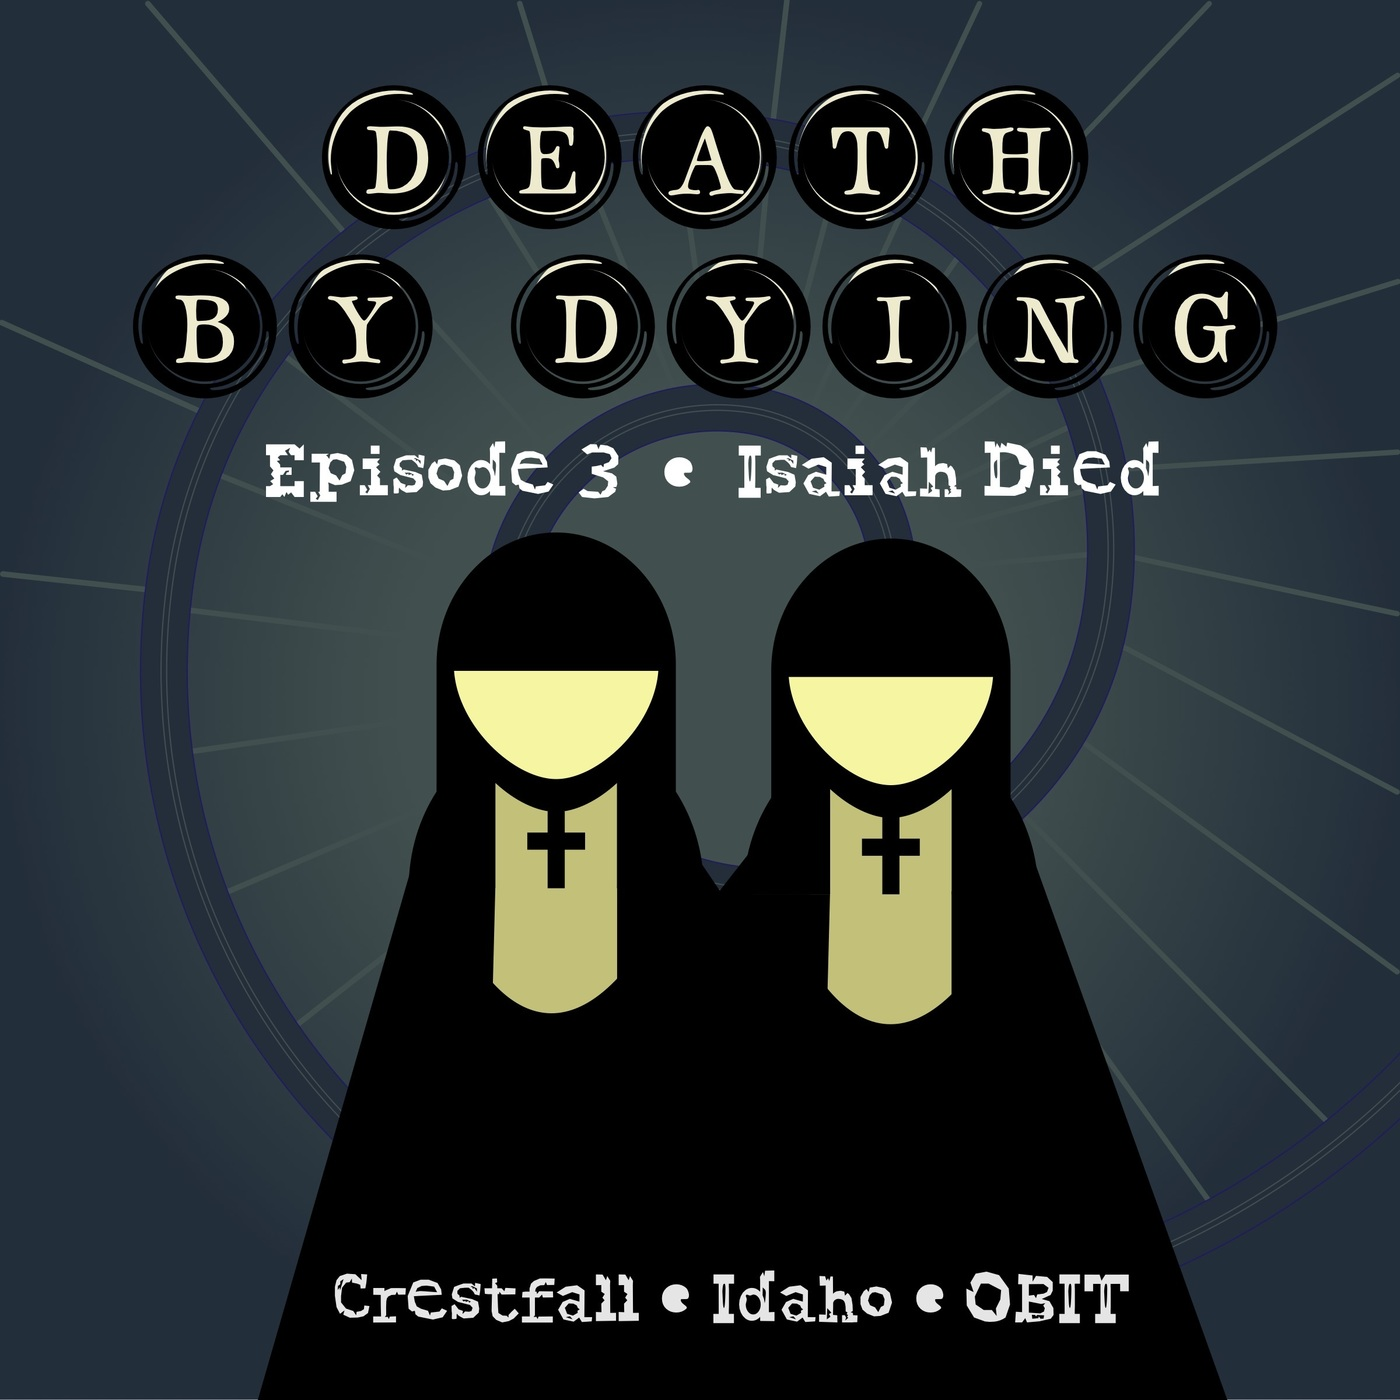 Obituary 03: Isaiah Died